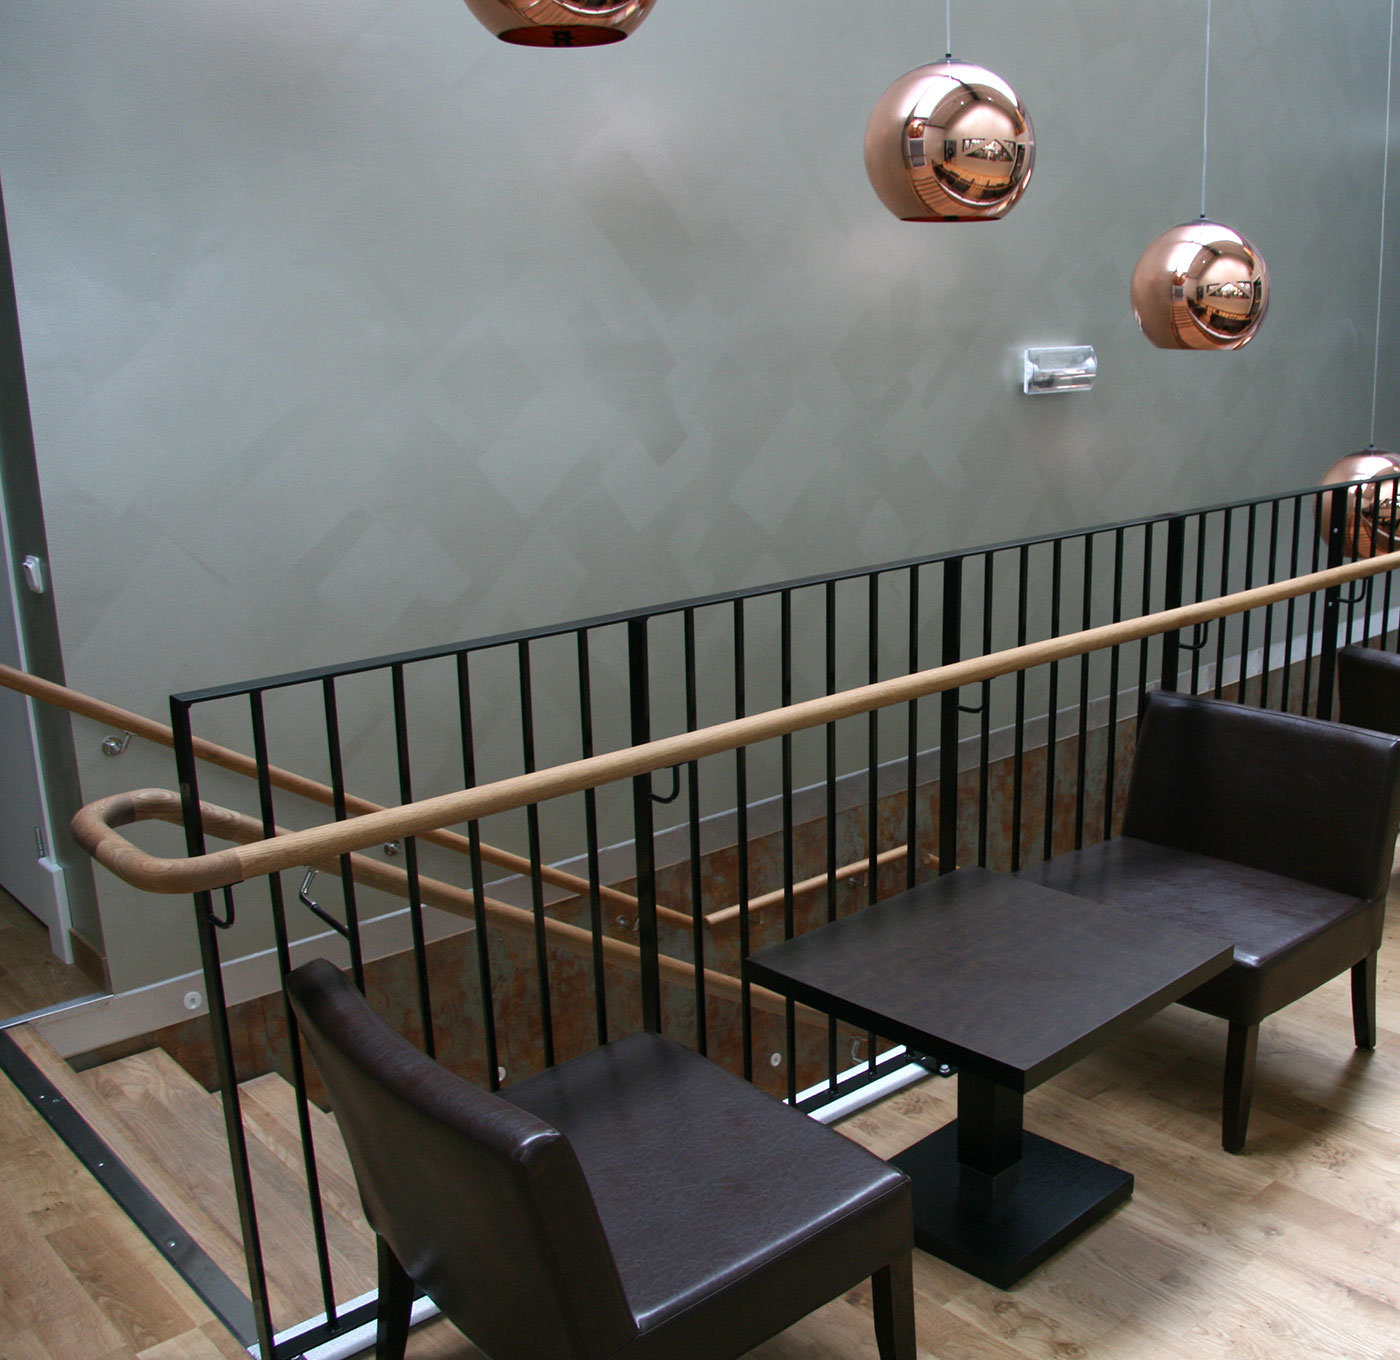 Powder coated railing with wooden handrail